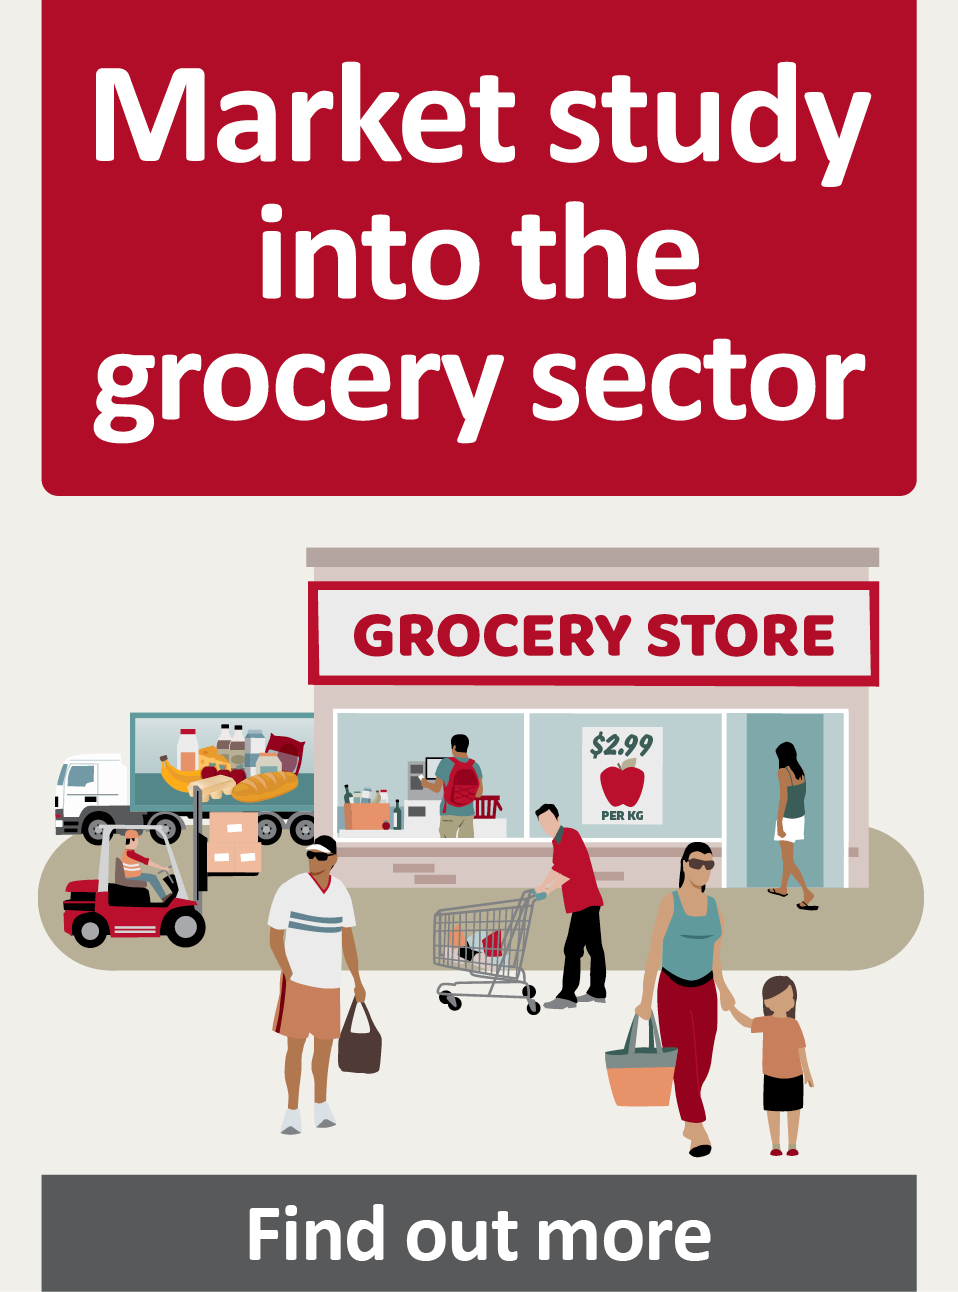 Market study into the grocery sector